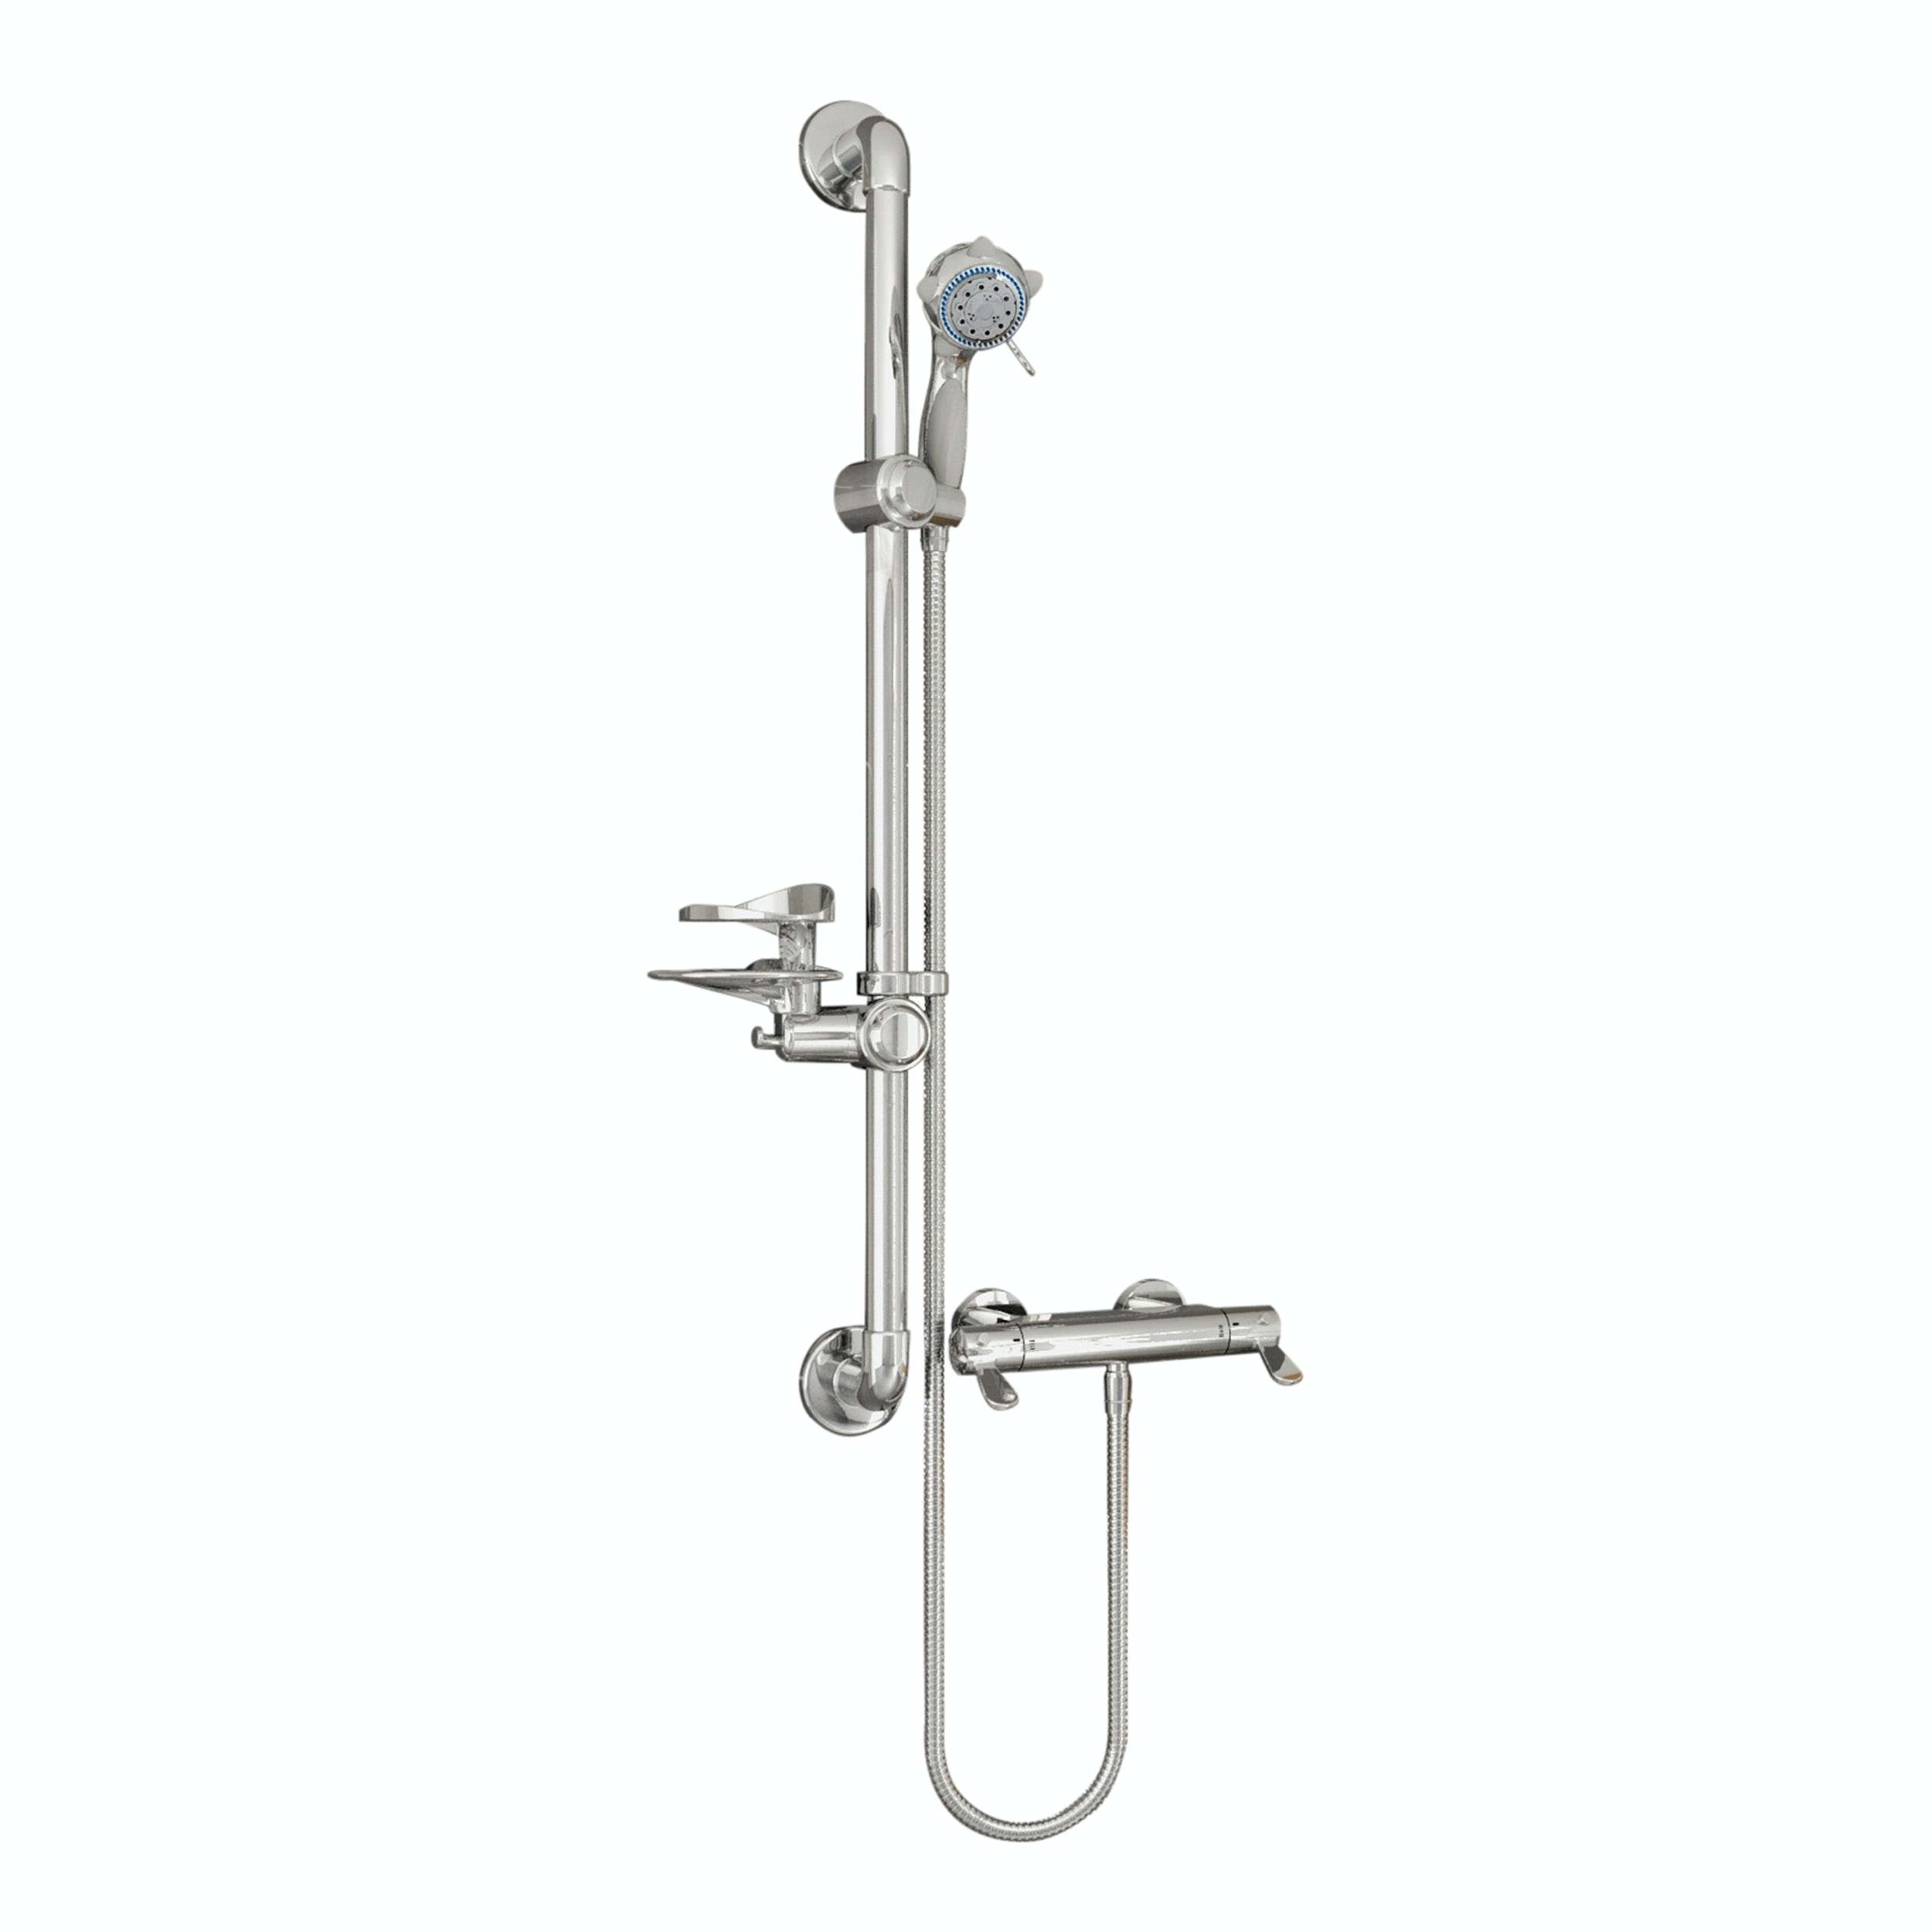 AKW Arka Care thermostatic mixer shower set